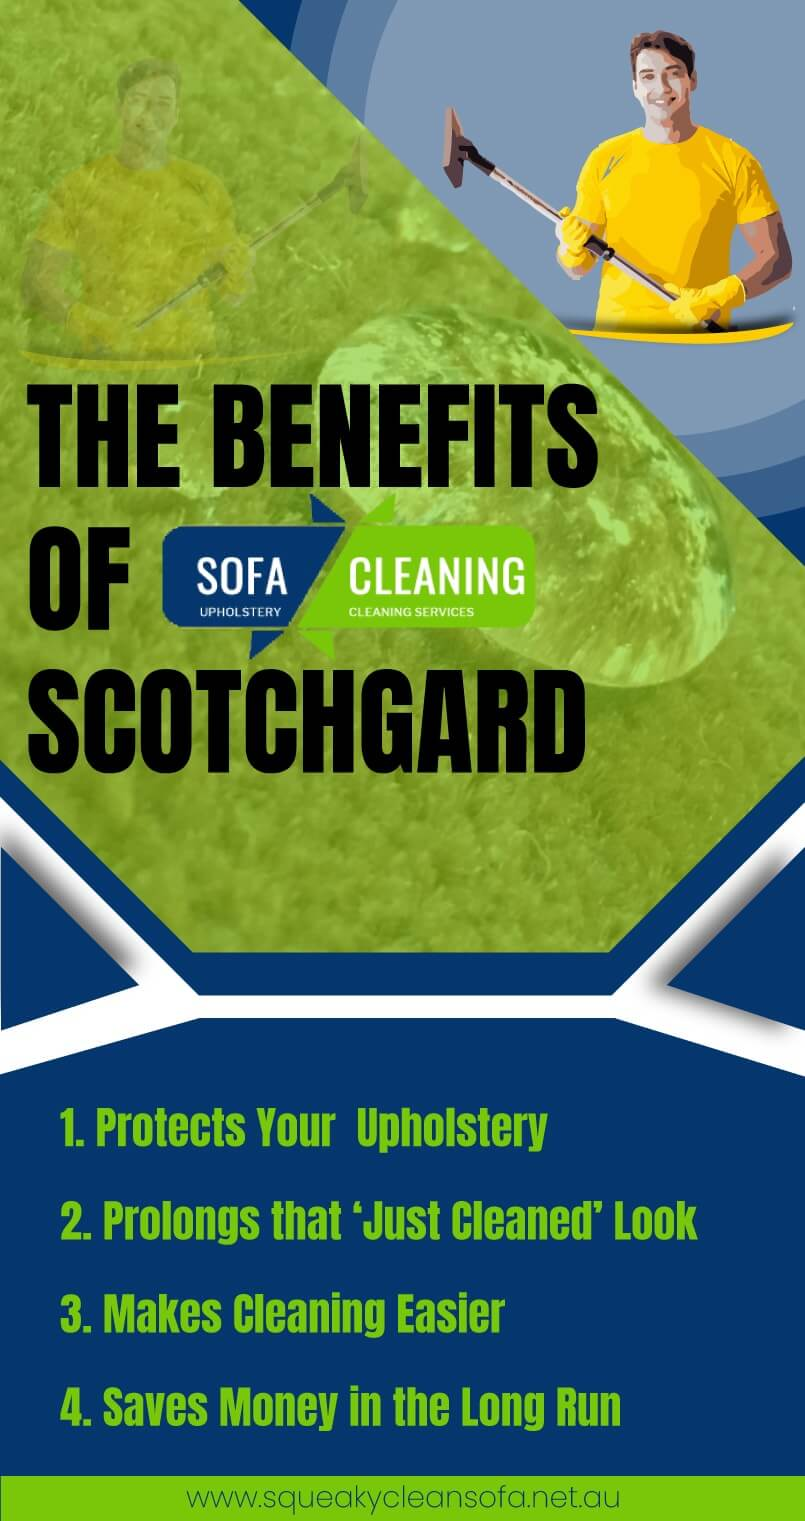 The Benefits Of Scotchgard